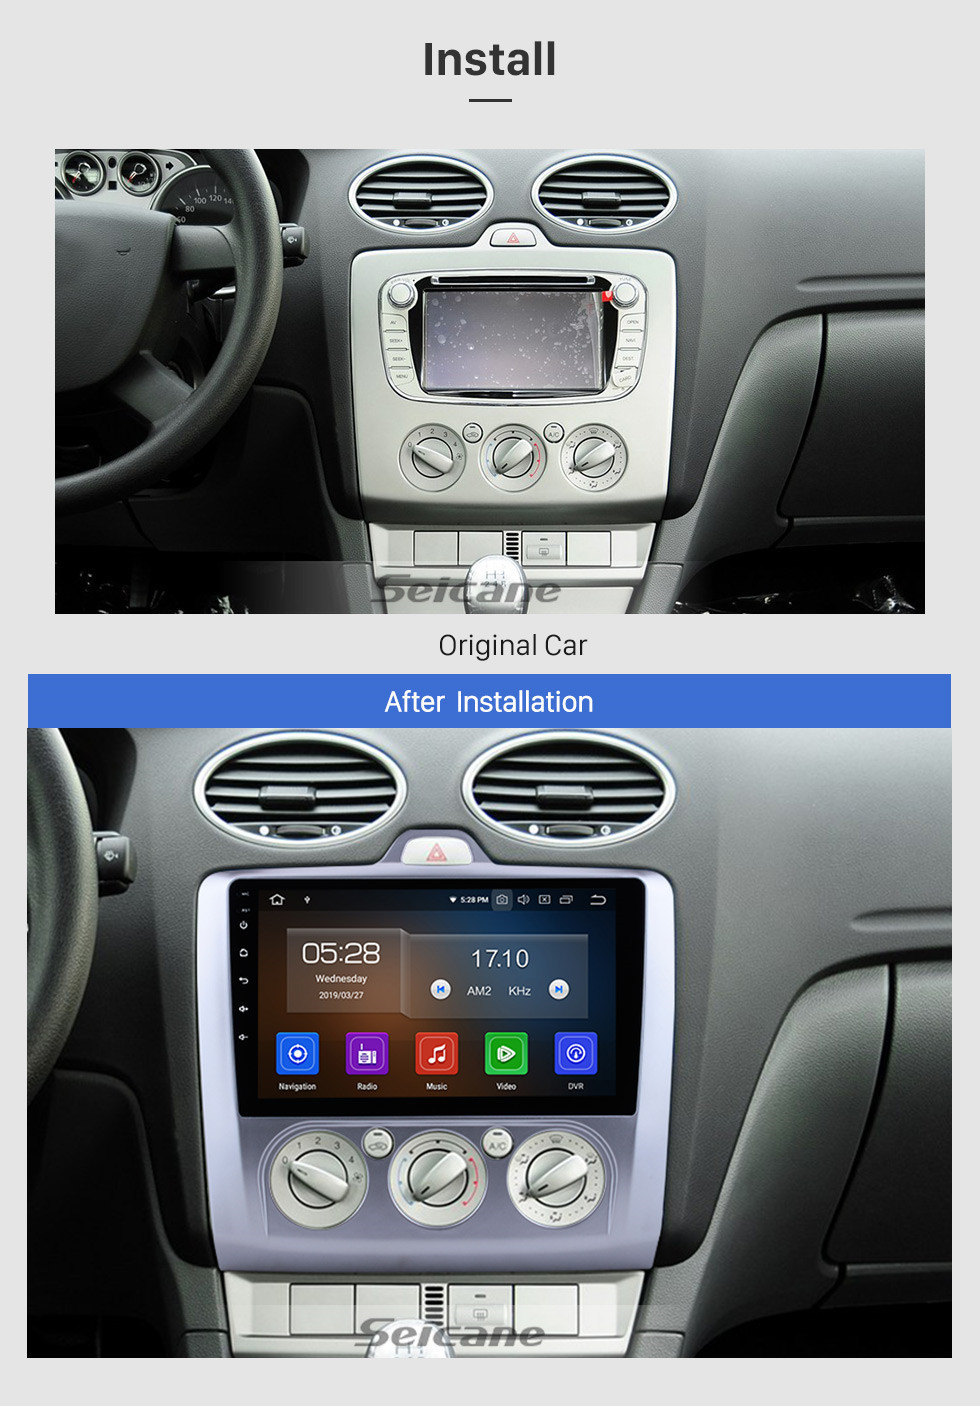 Seicane 9 Inch OEM Android 10.0 Radio 2004-2011 Ford FOCUS EXI MT 2 3 Mk2/Mk3 Manual air condition GPS Navigation system Bluetooth Touch Screen TPMS DVR OBD II Rear camera AUX 3G WiFi HD 1080P Video